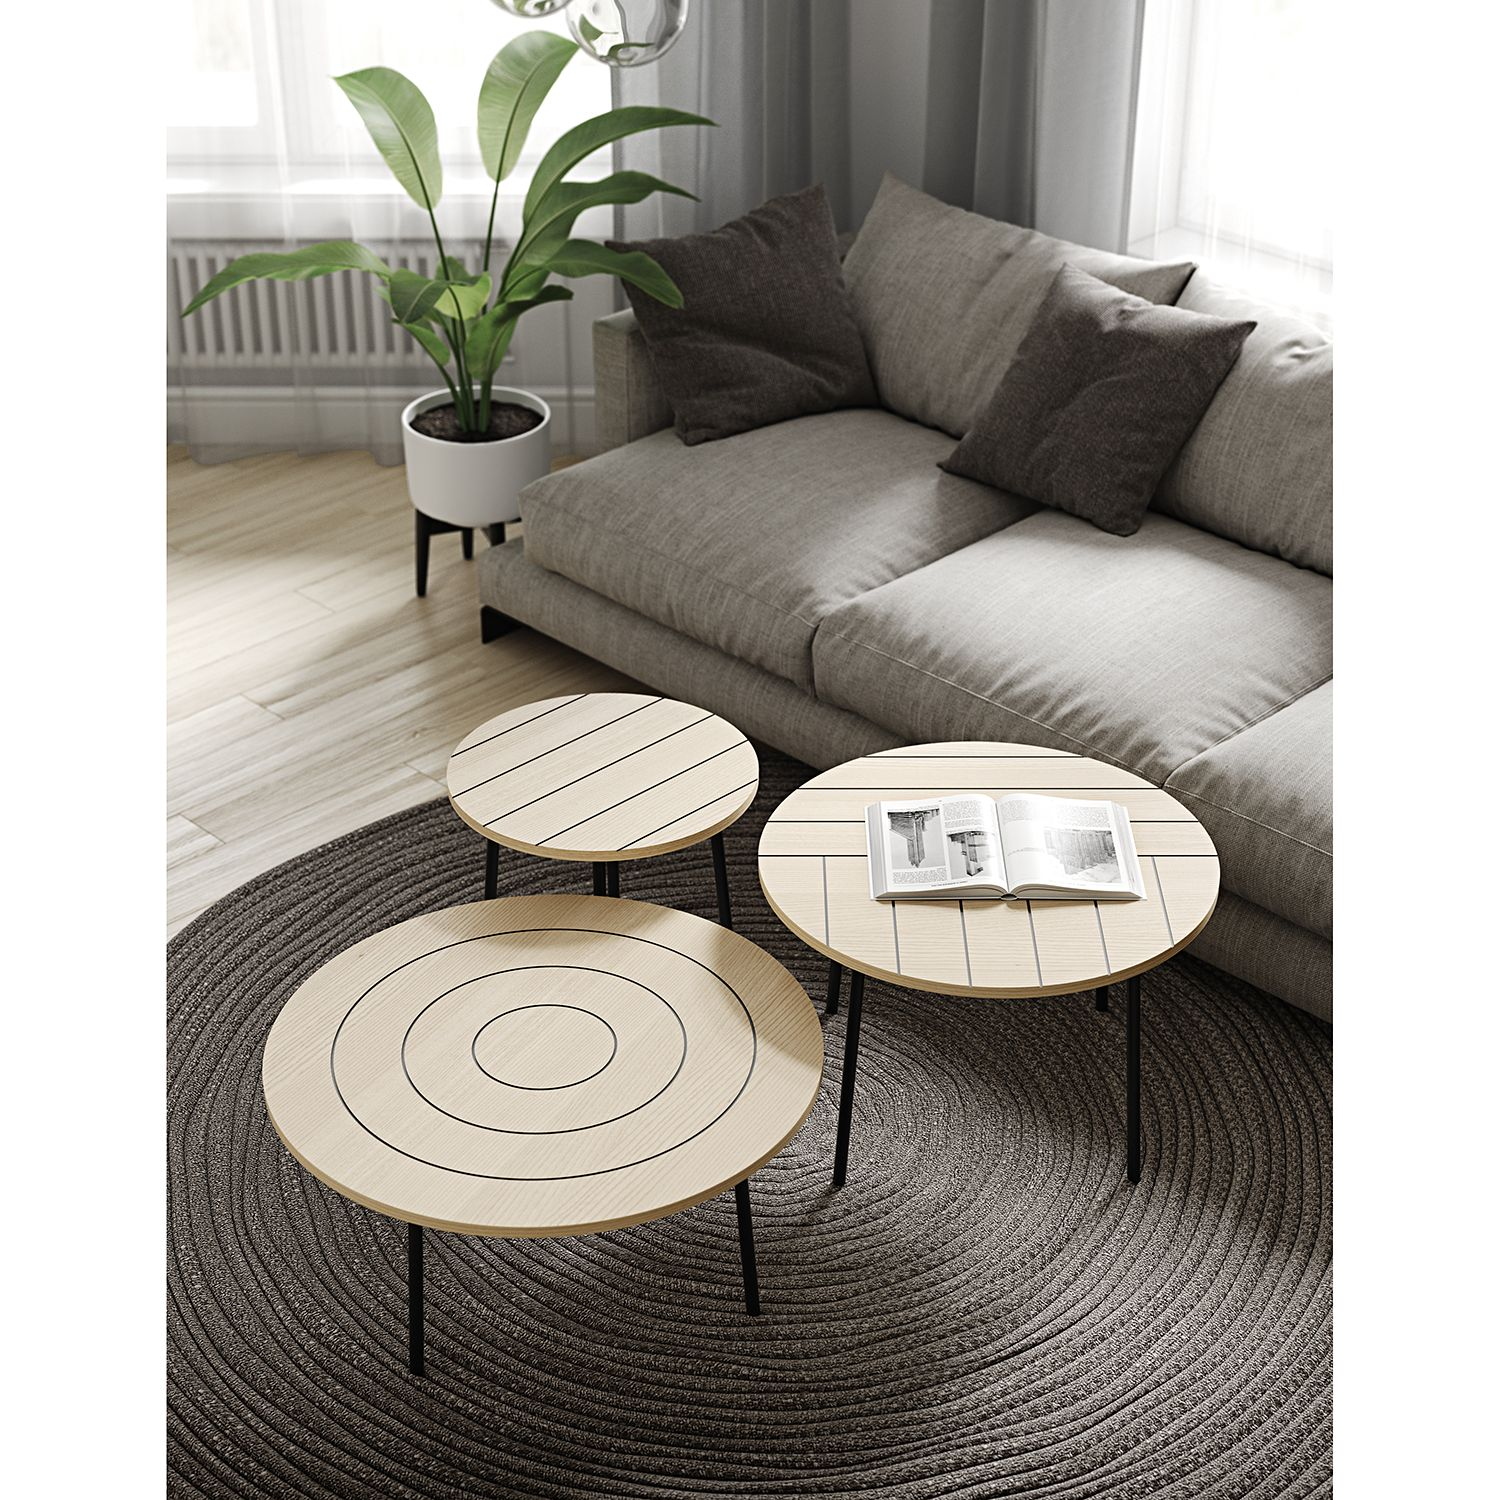 Table basse Ply